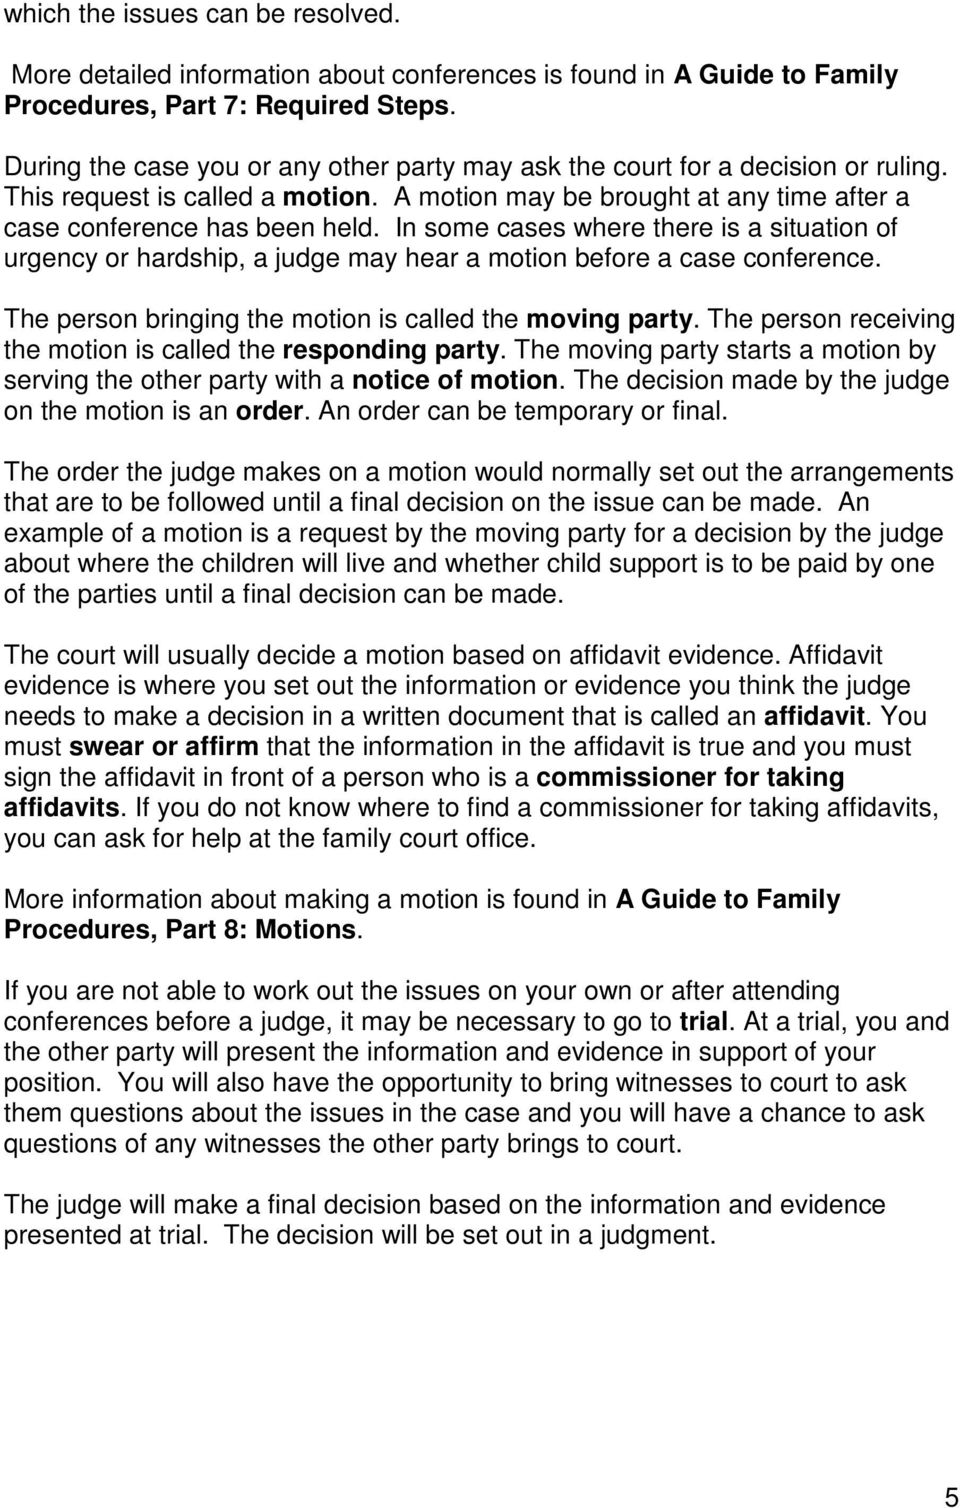 In some cases where there is a situation of urgency or hardship, a judge may hear a motion before a case conference. The person bringing the motion is called the moving party.